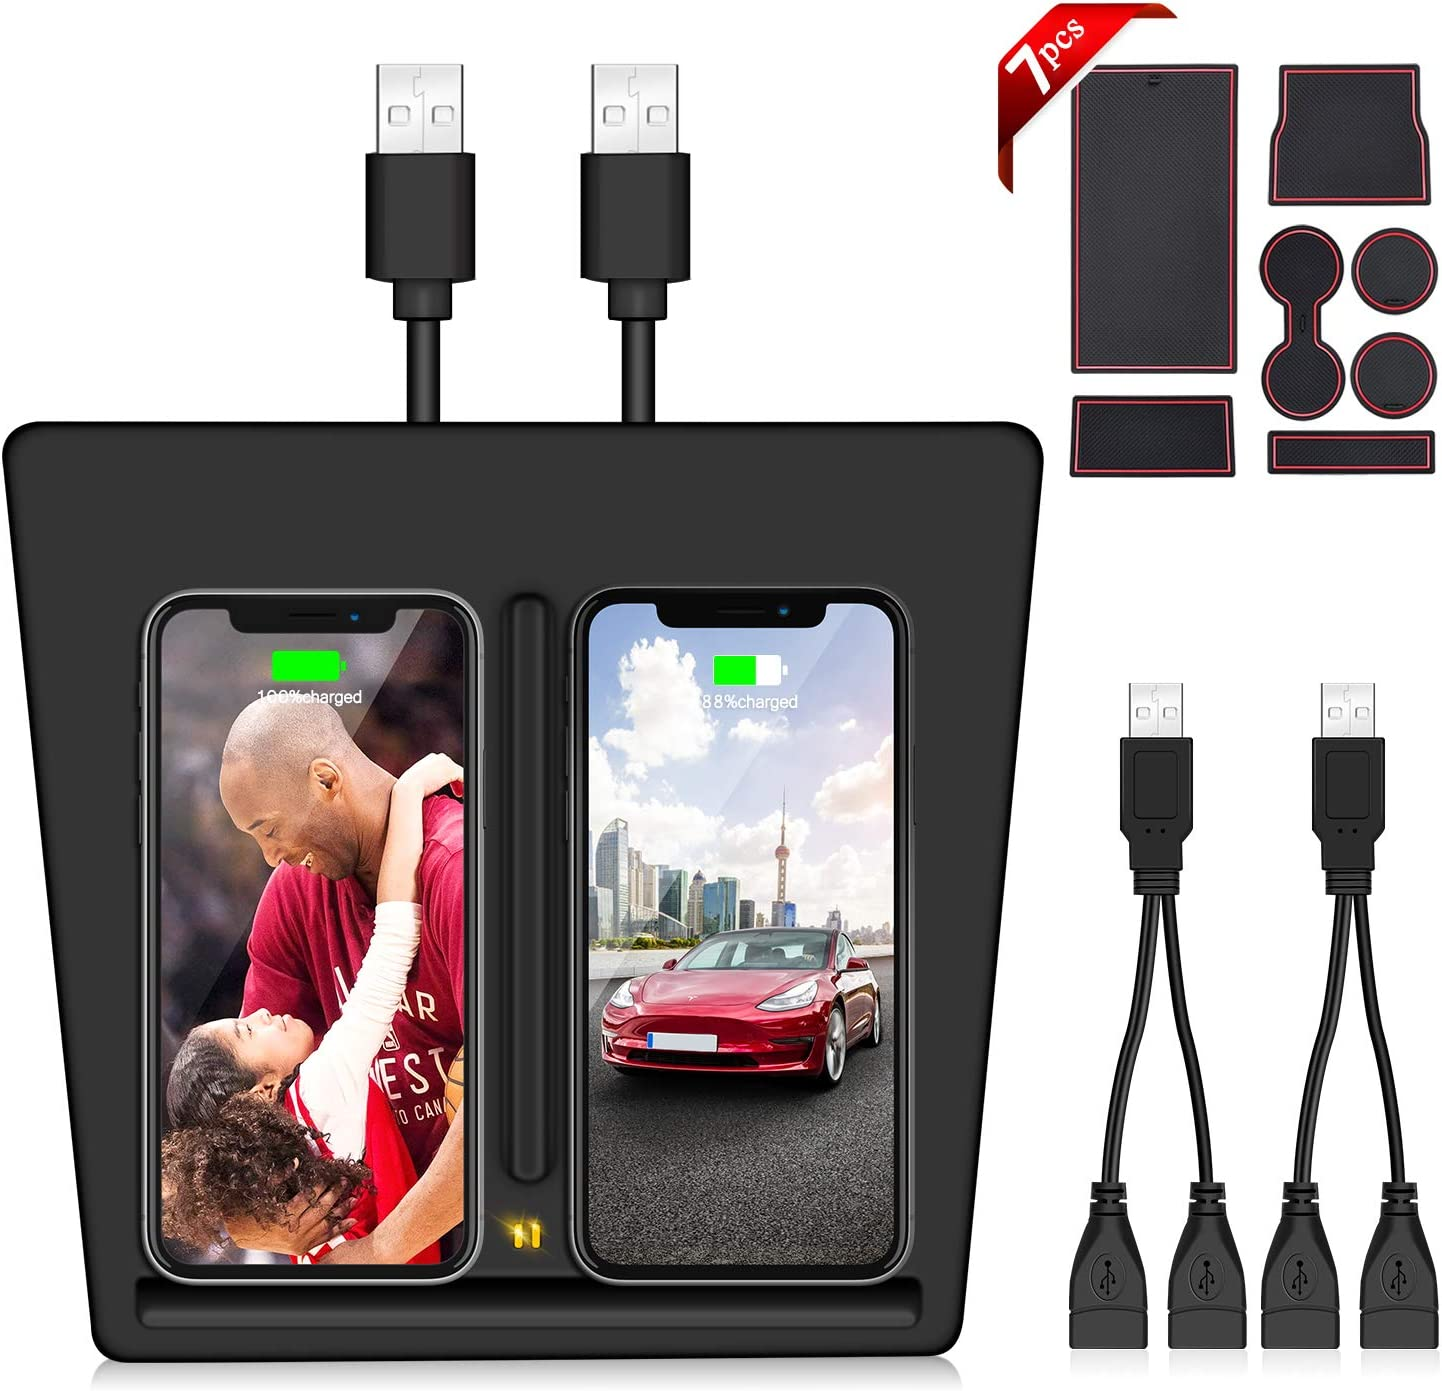 Fast QI Wireless Charging Pad Car Wireless Charger Panel for Tesla Model 3 with Custom Fit Cup and Center Console Liner Accessories Dual 10W Wireless Charger Compatible with Tesla Model 3